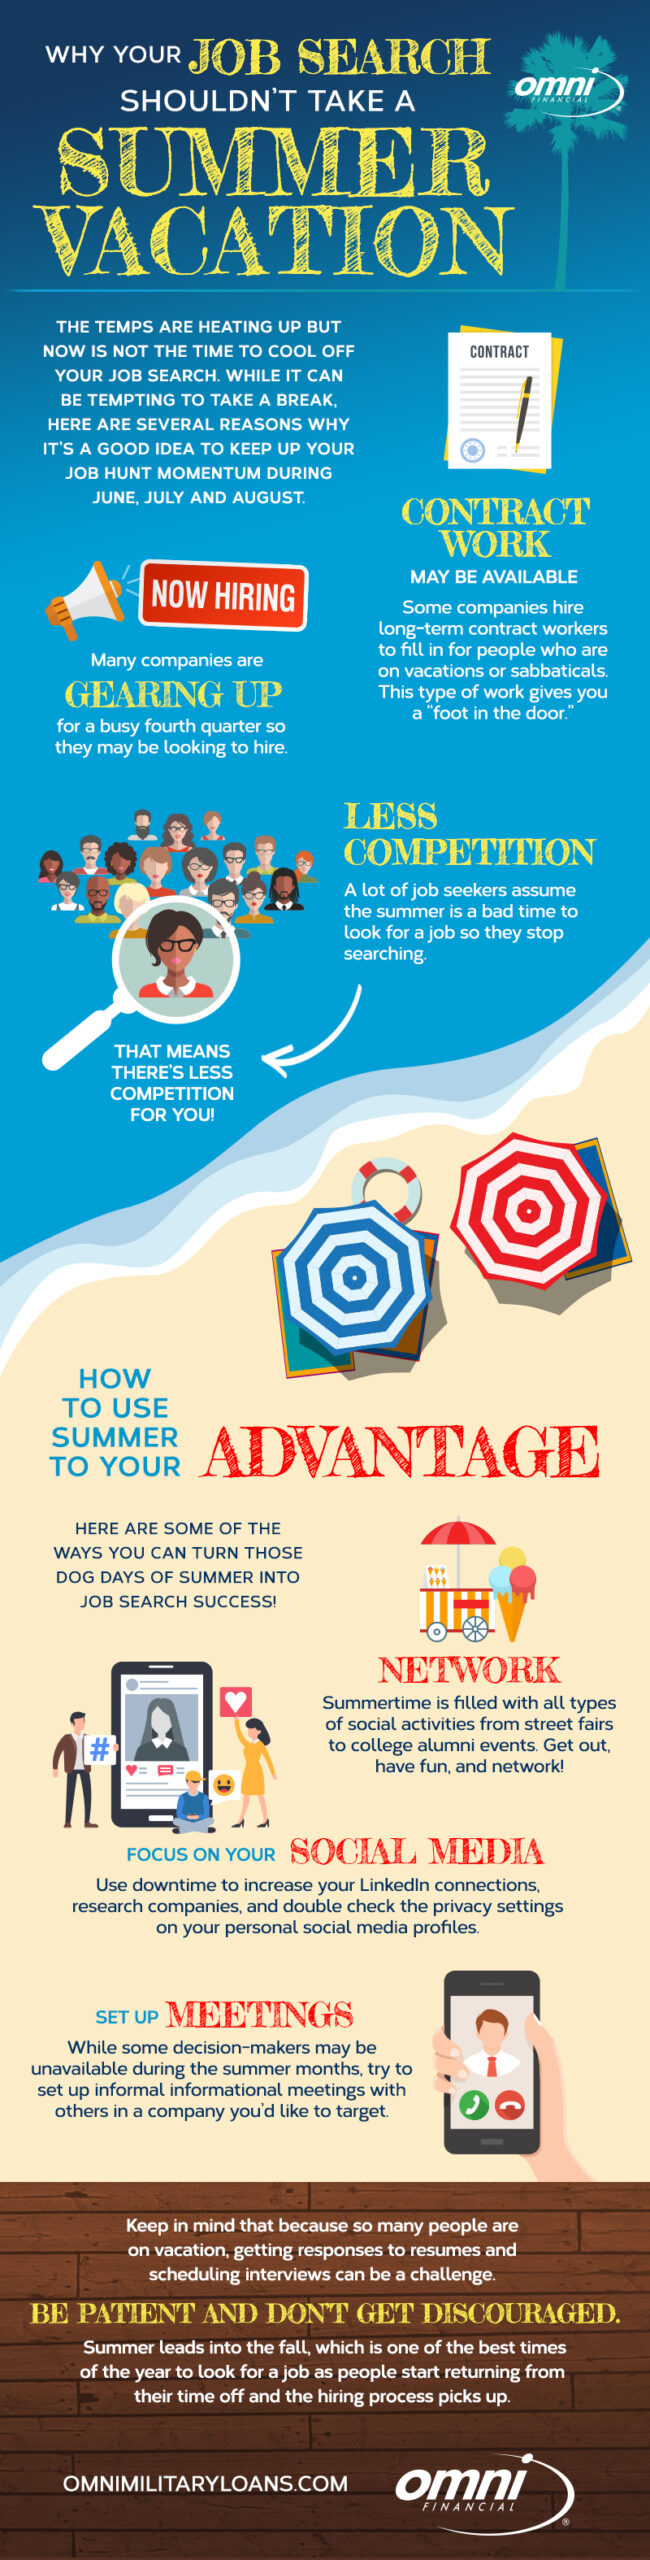 Infographic:  Why Your Job Search Shouldn't Take A Summer Vacation